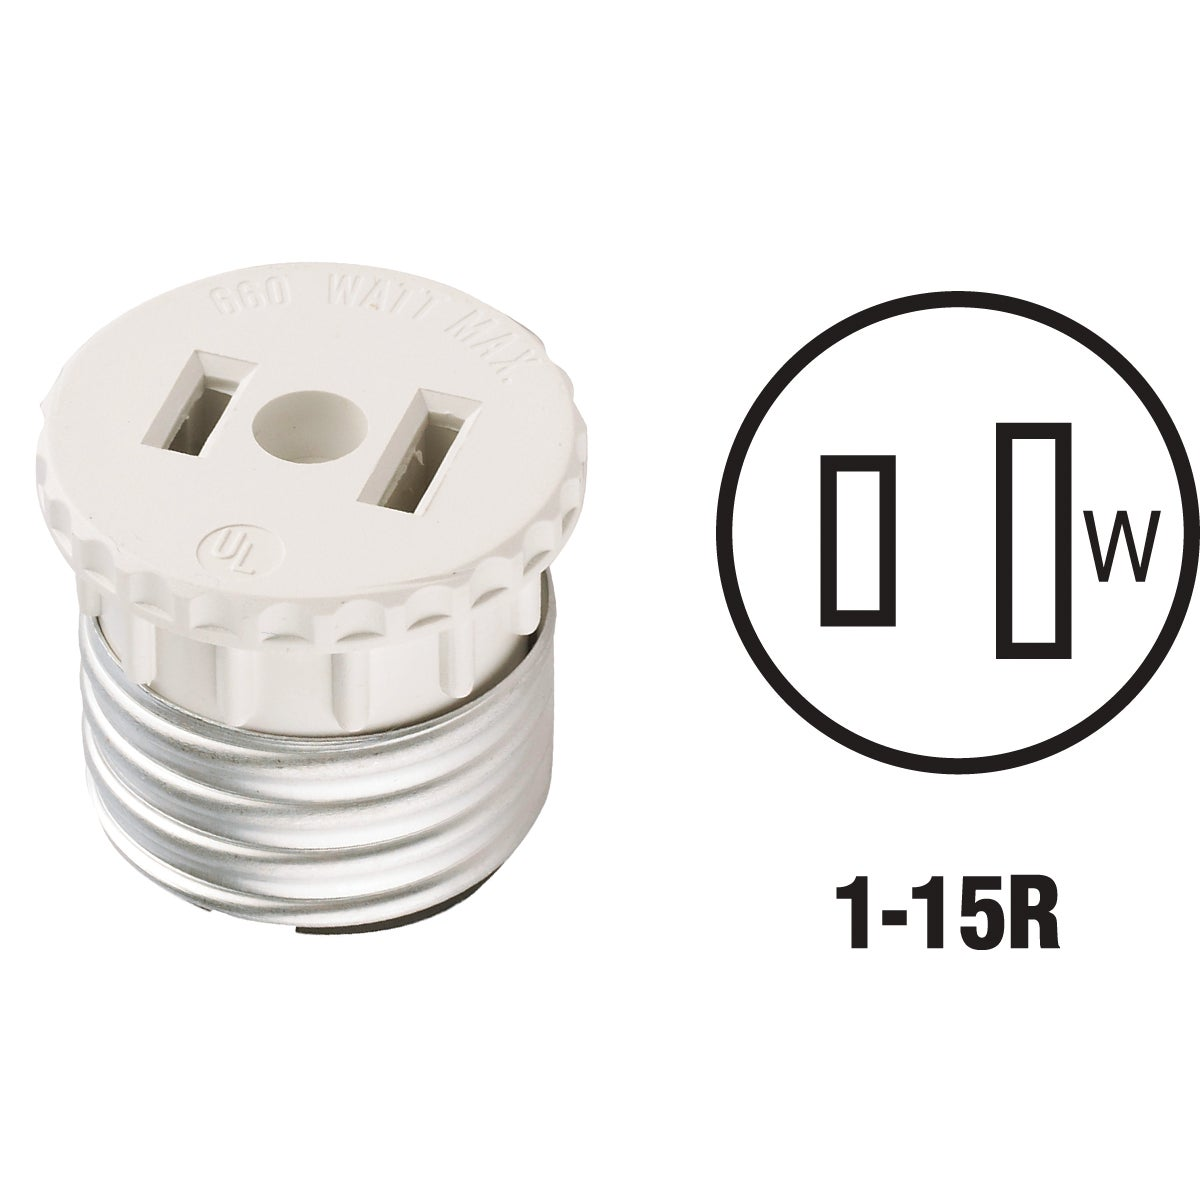 LAMPHOLDR/OUTLET ADAPTER - 125 by Leviton Mfg Co